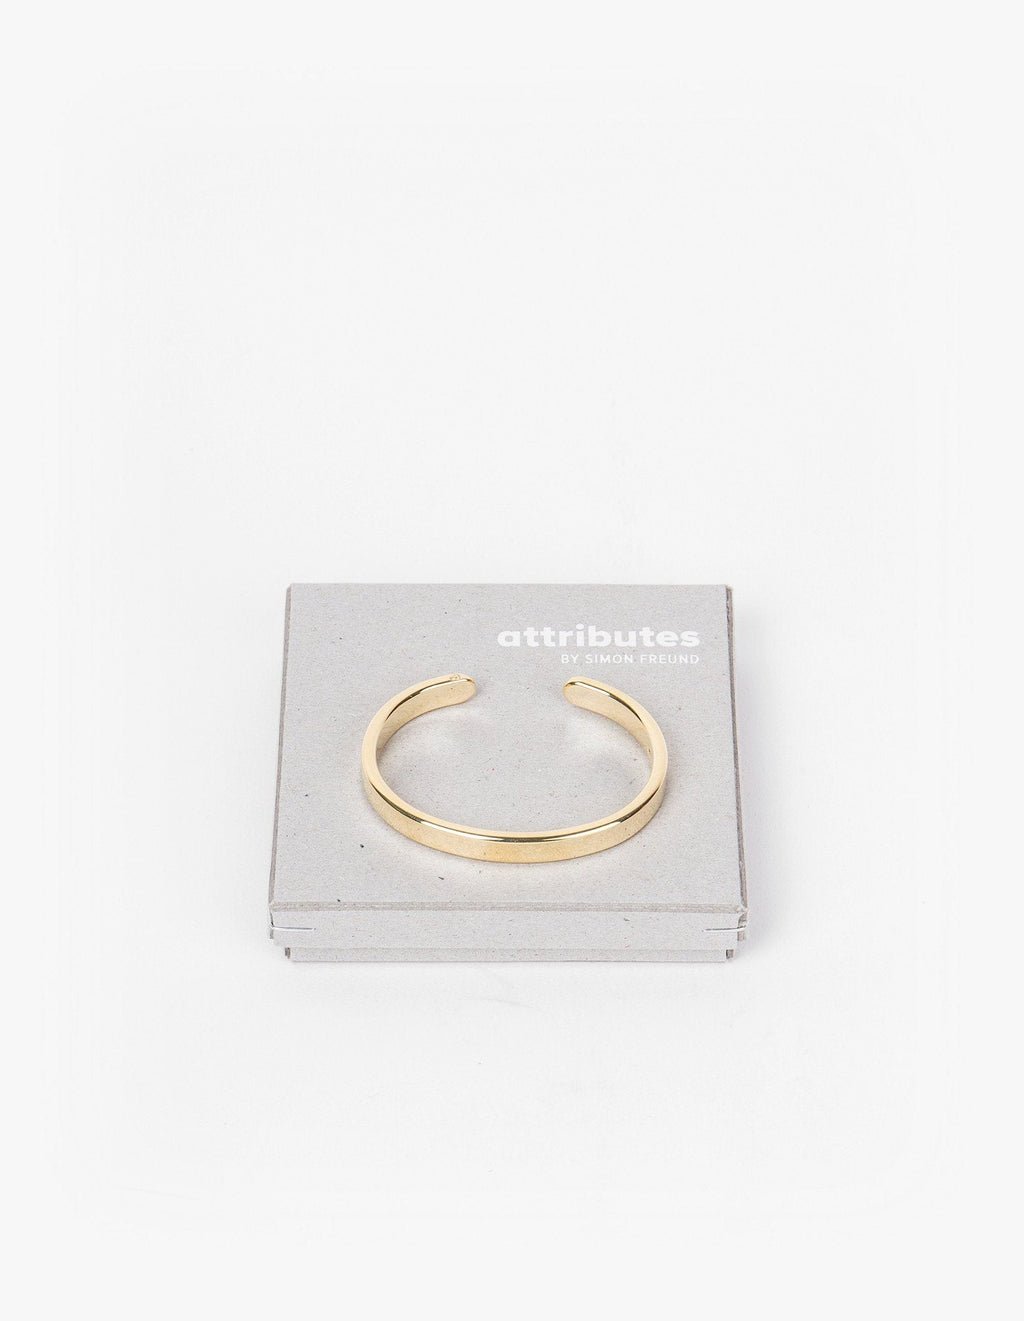 Attributes - The Gold Bracelet